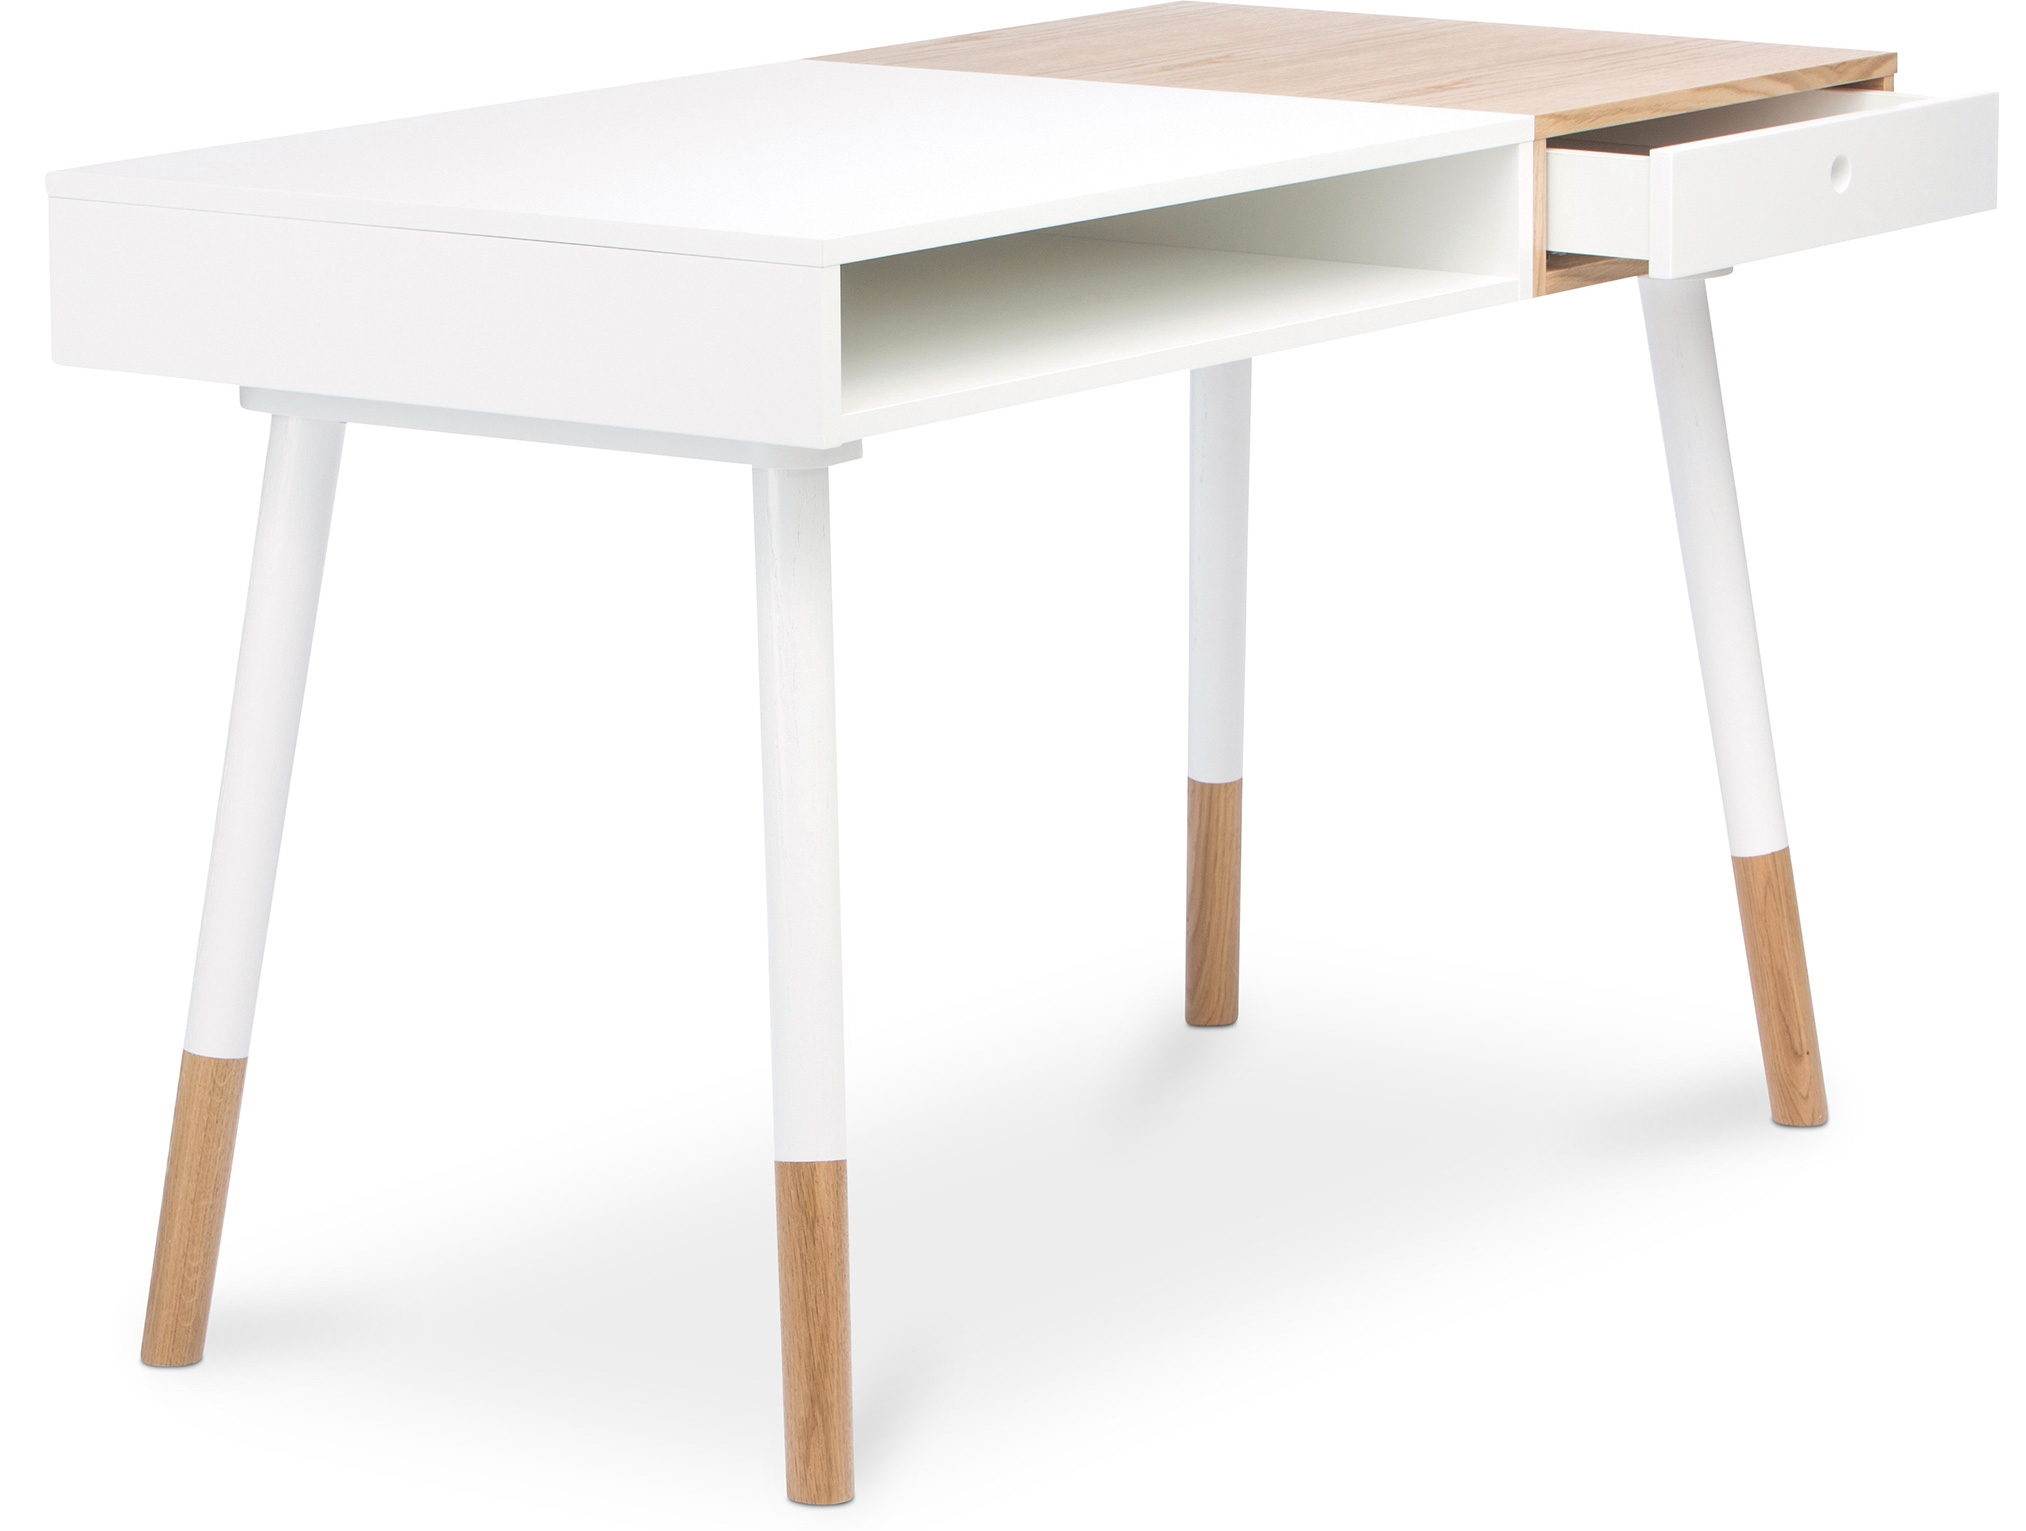 Bureau moderne bois naturel et blanc scandi for Bureau meuble moderne